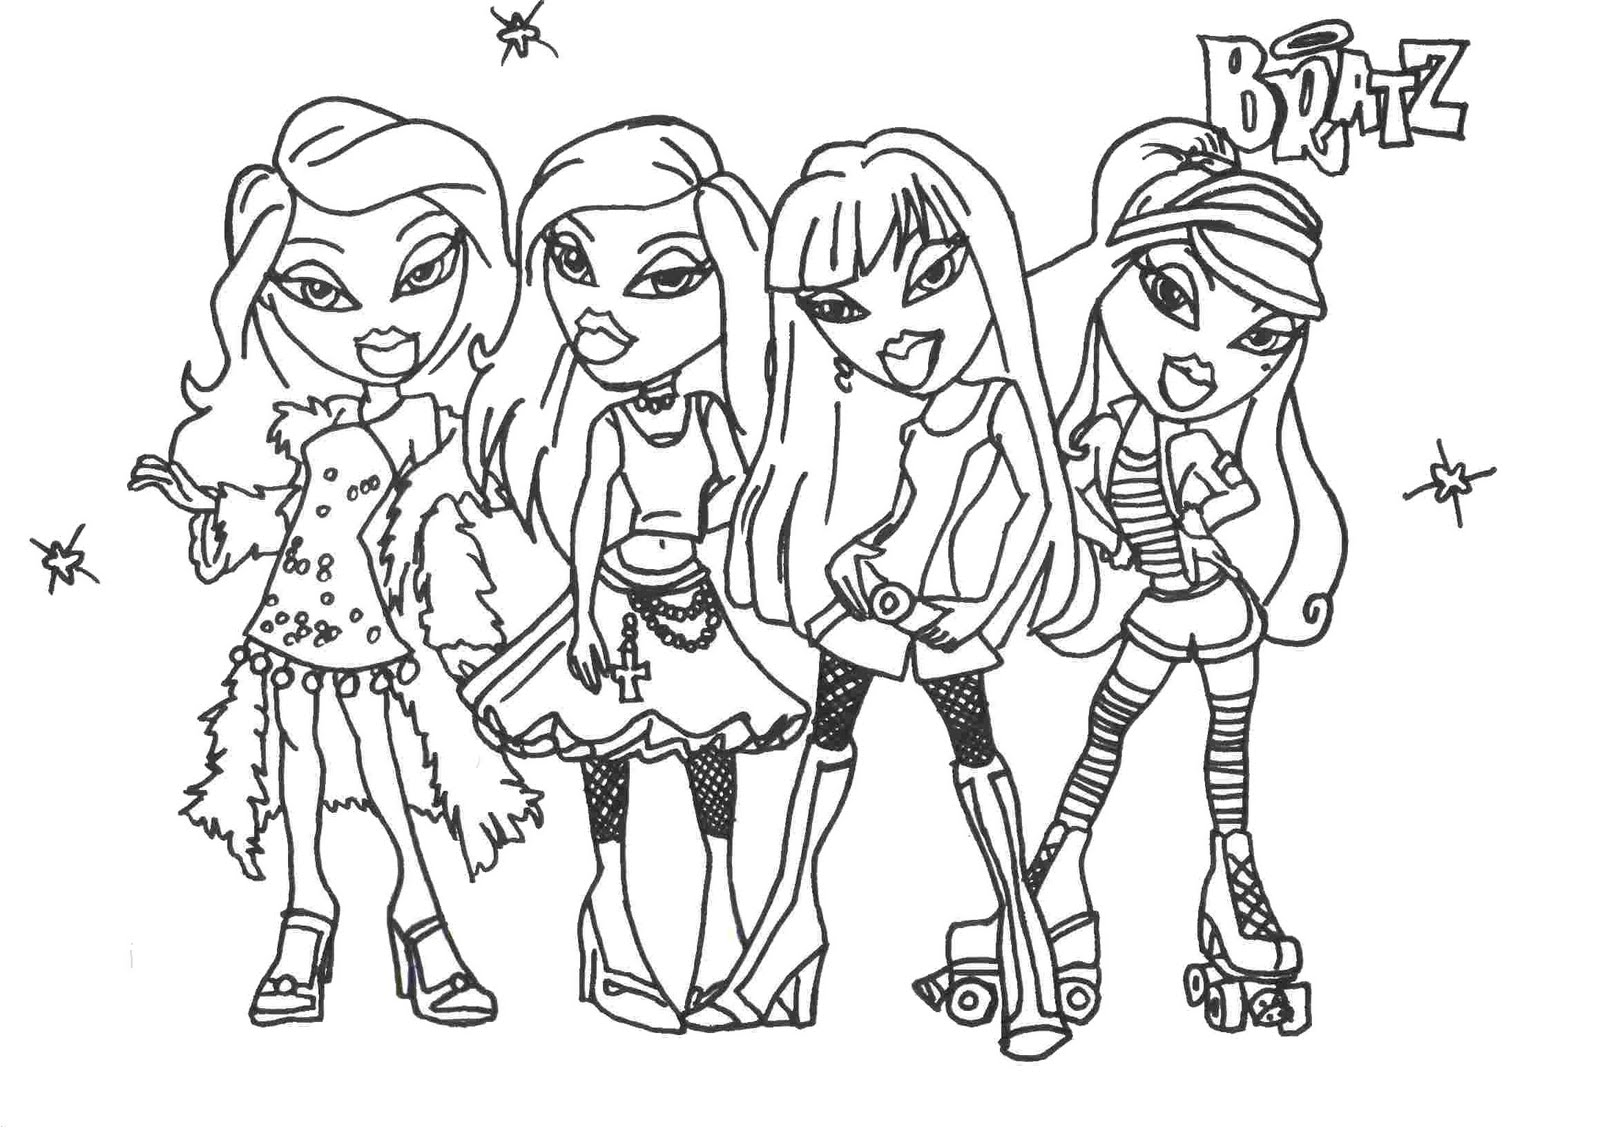 bratz coloring pages to color - photo#16